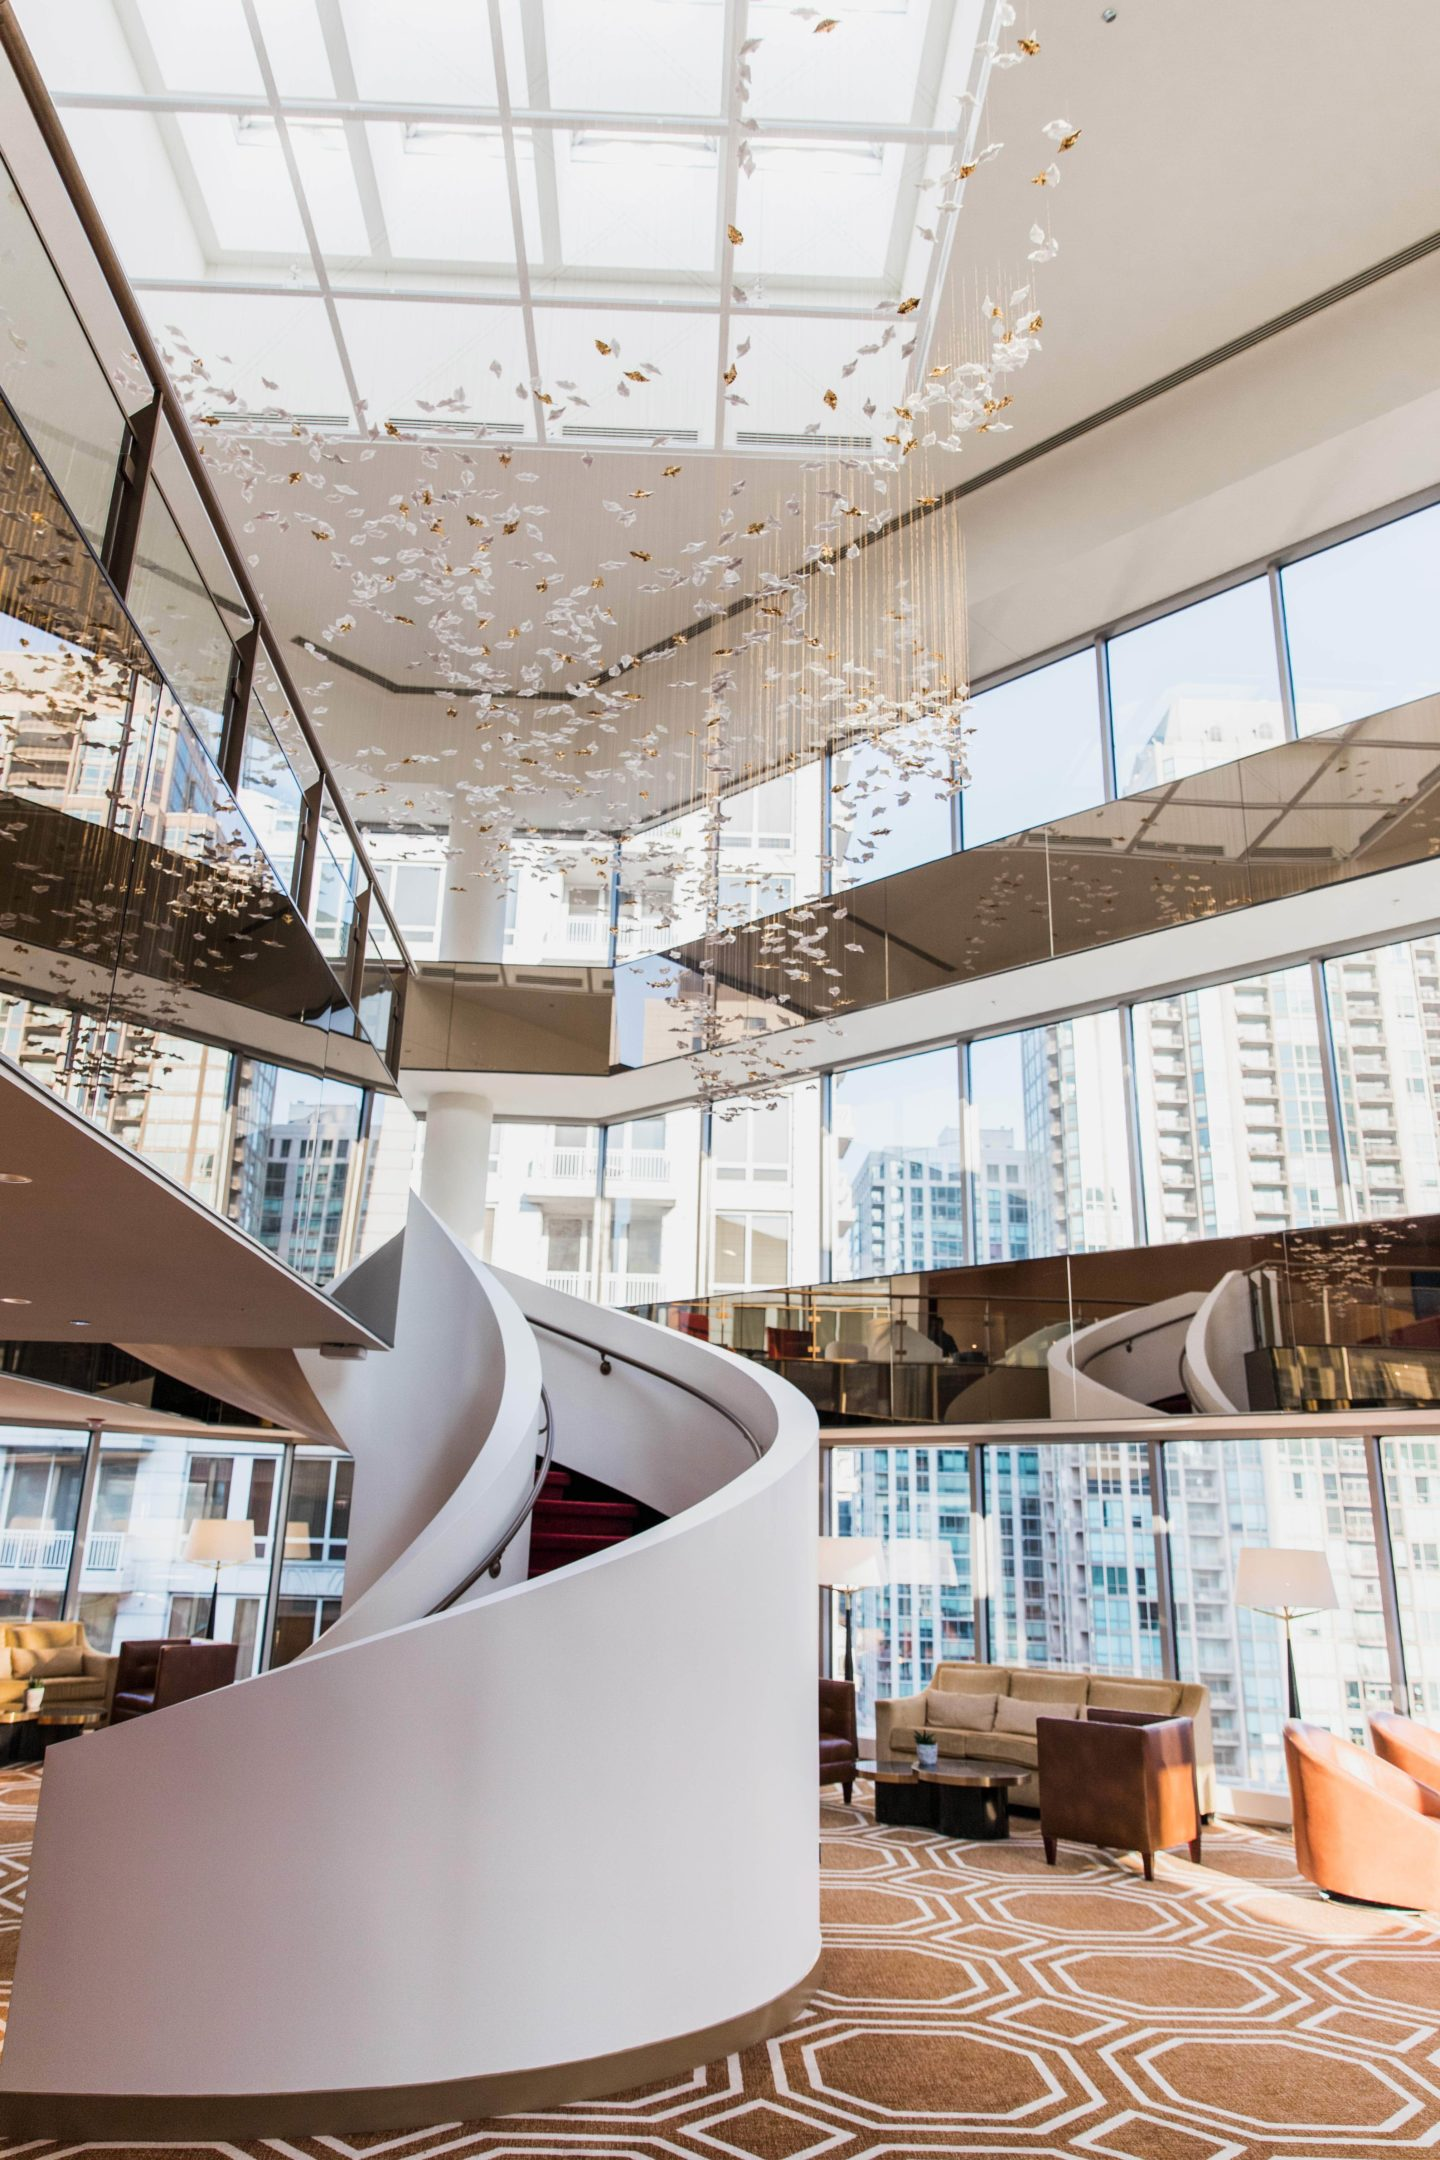 Conrad Chicago | Chicago Travel Guide: Where to Stay, What to do, Where to Eat and Drink in Chicago